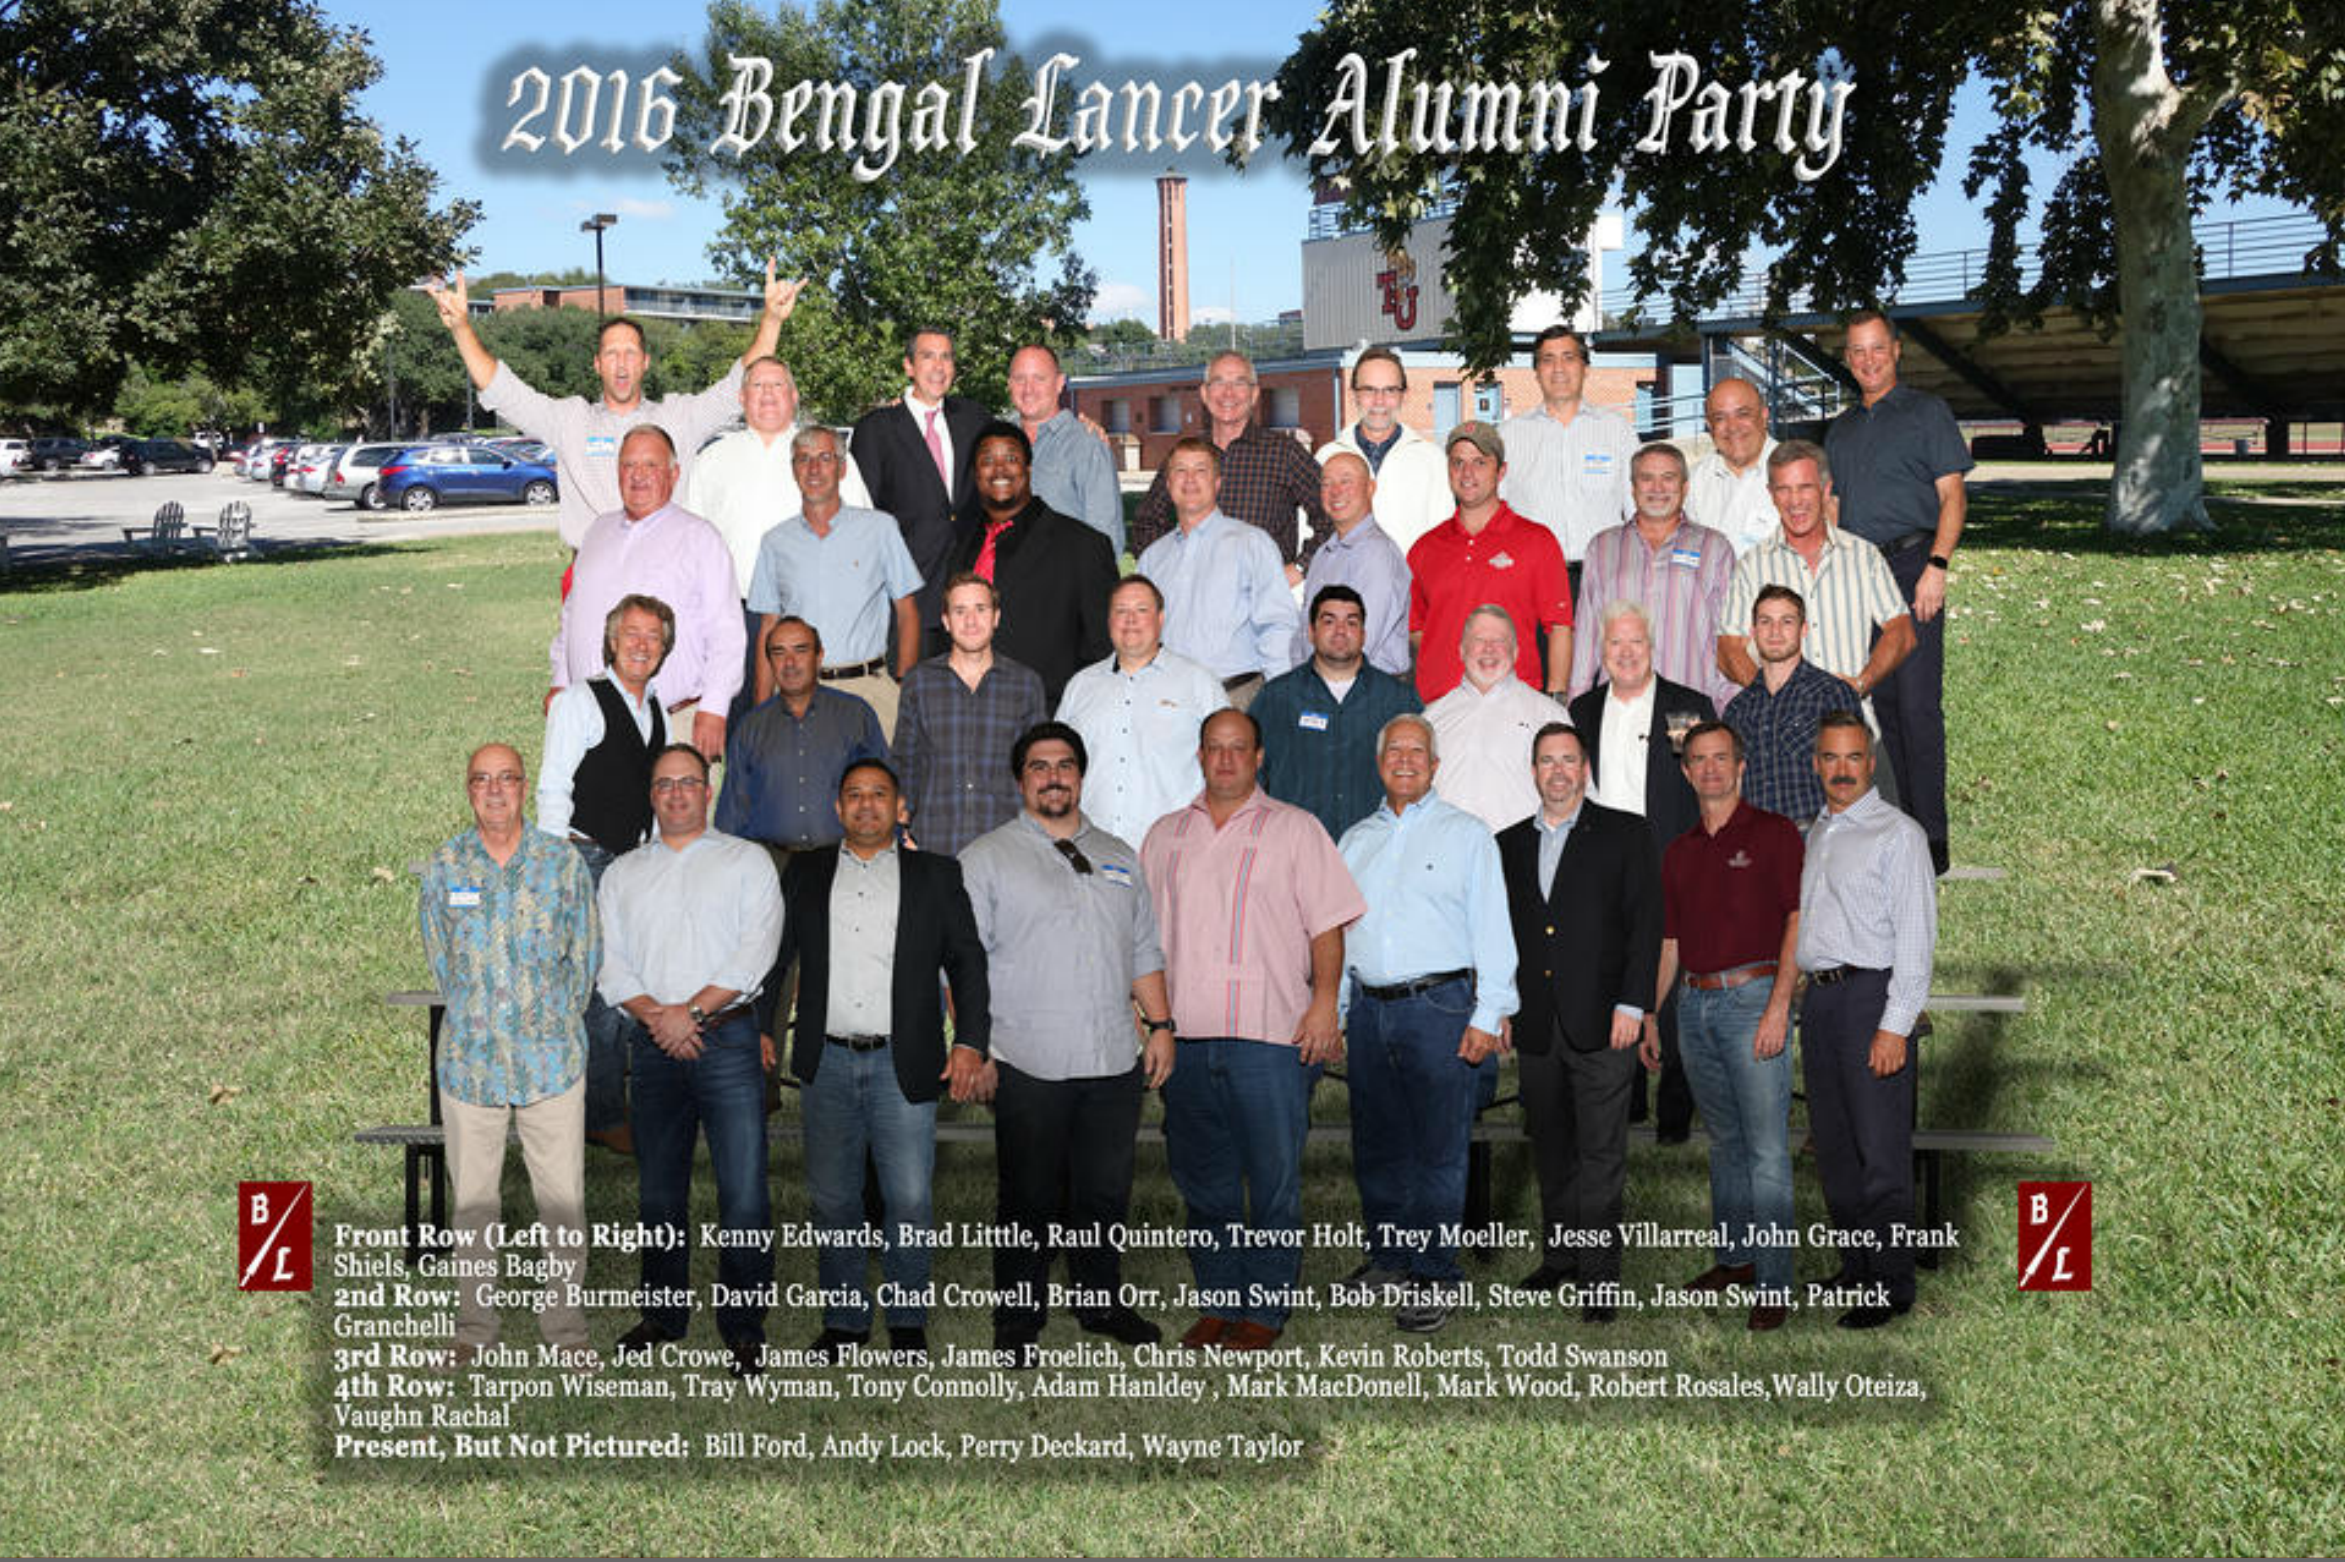 2016 BL ALumni Party